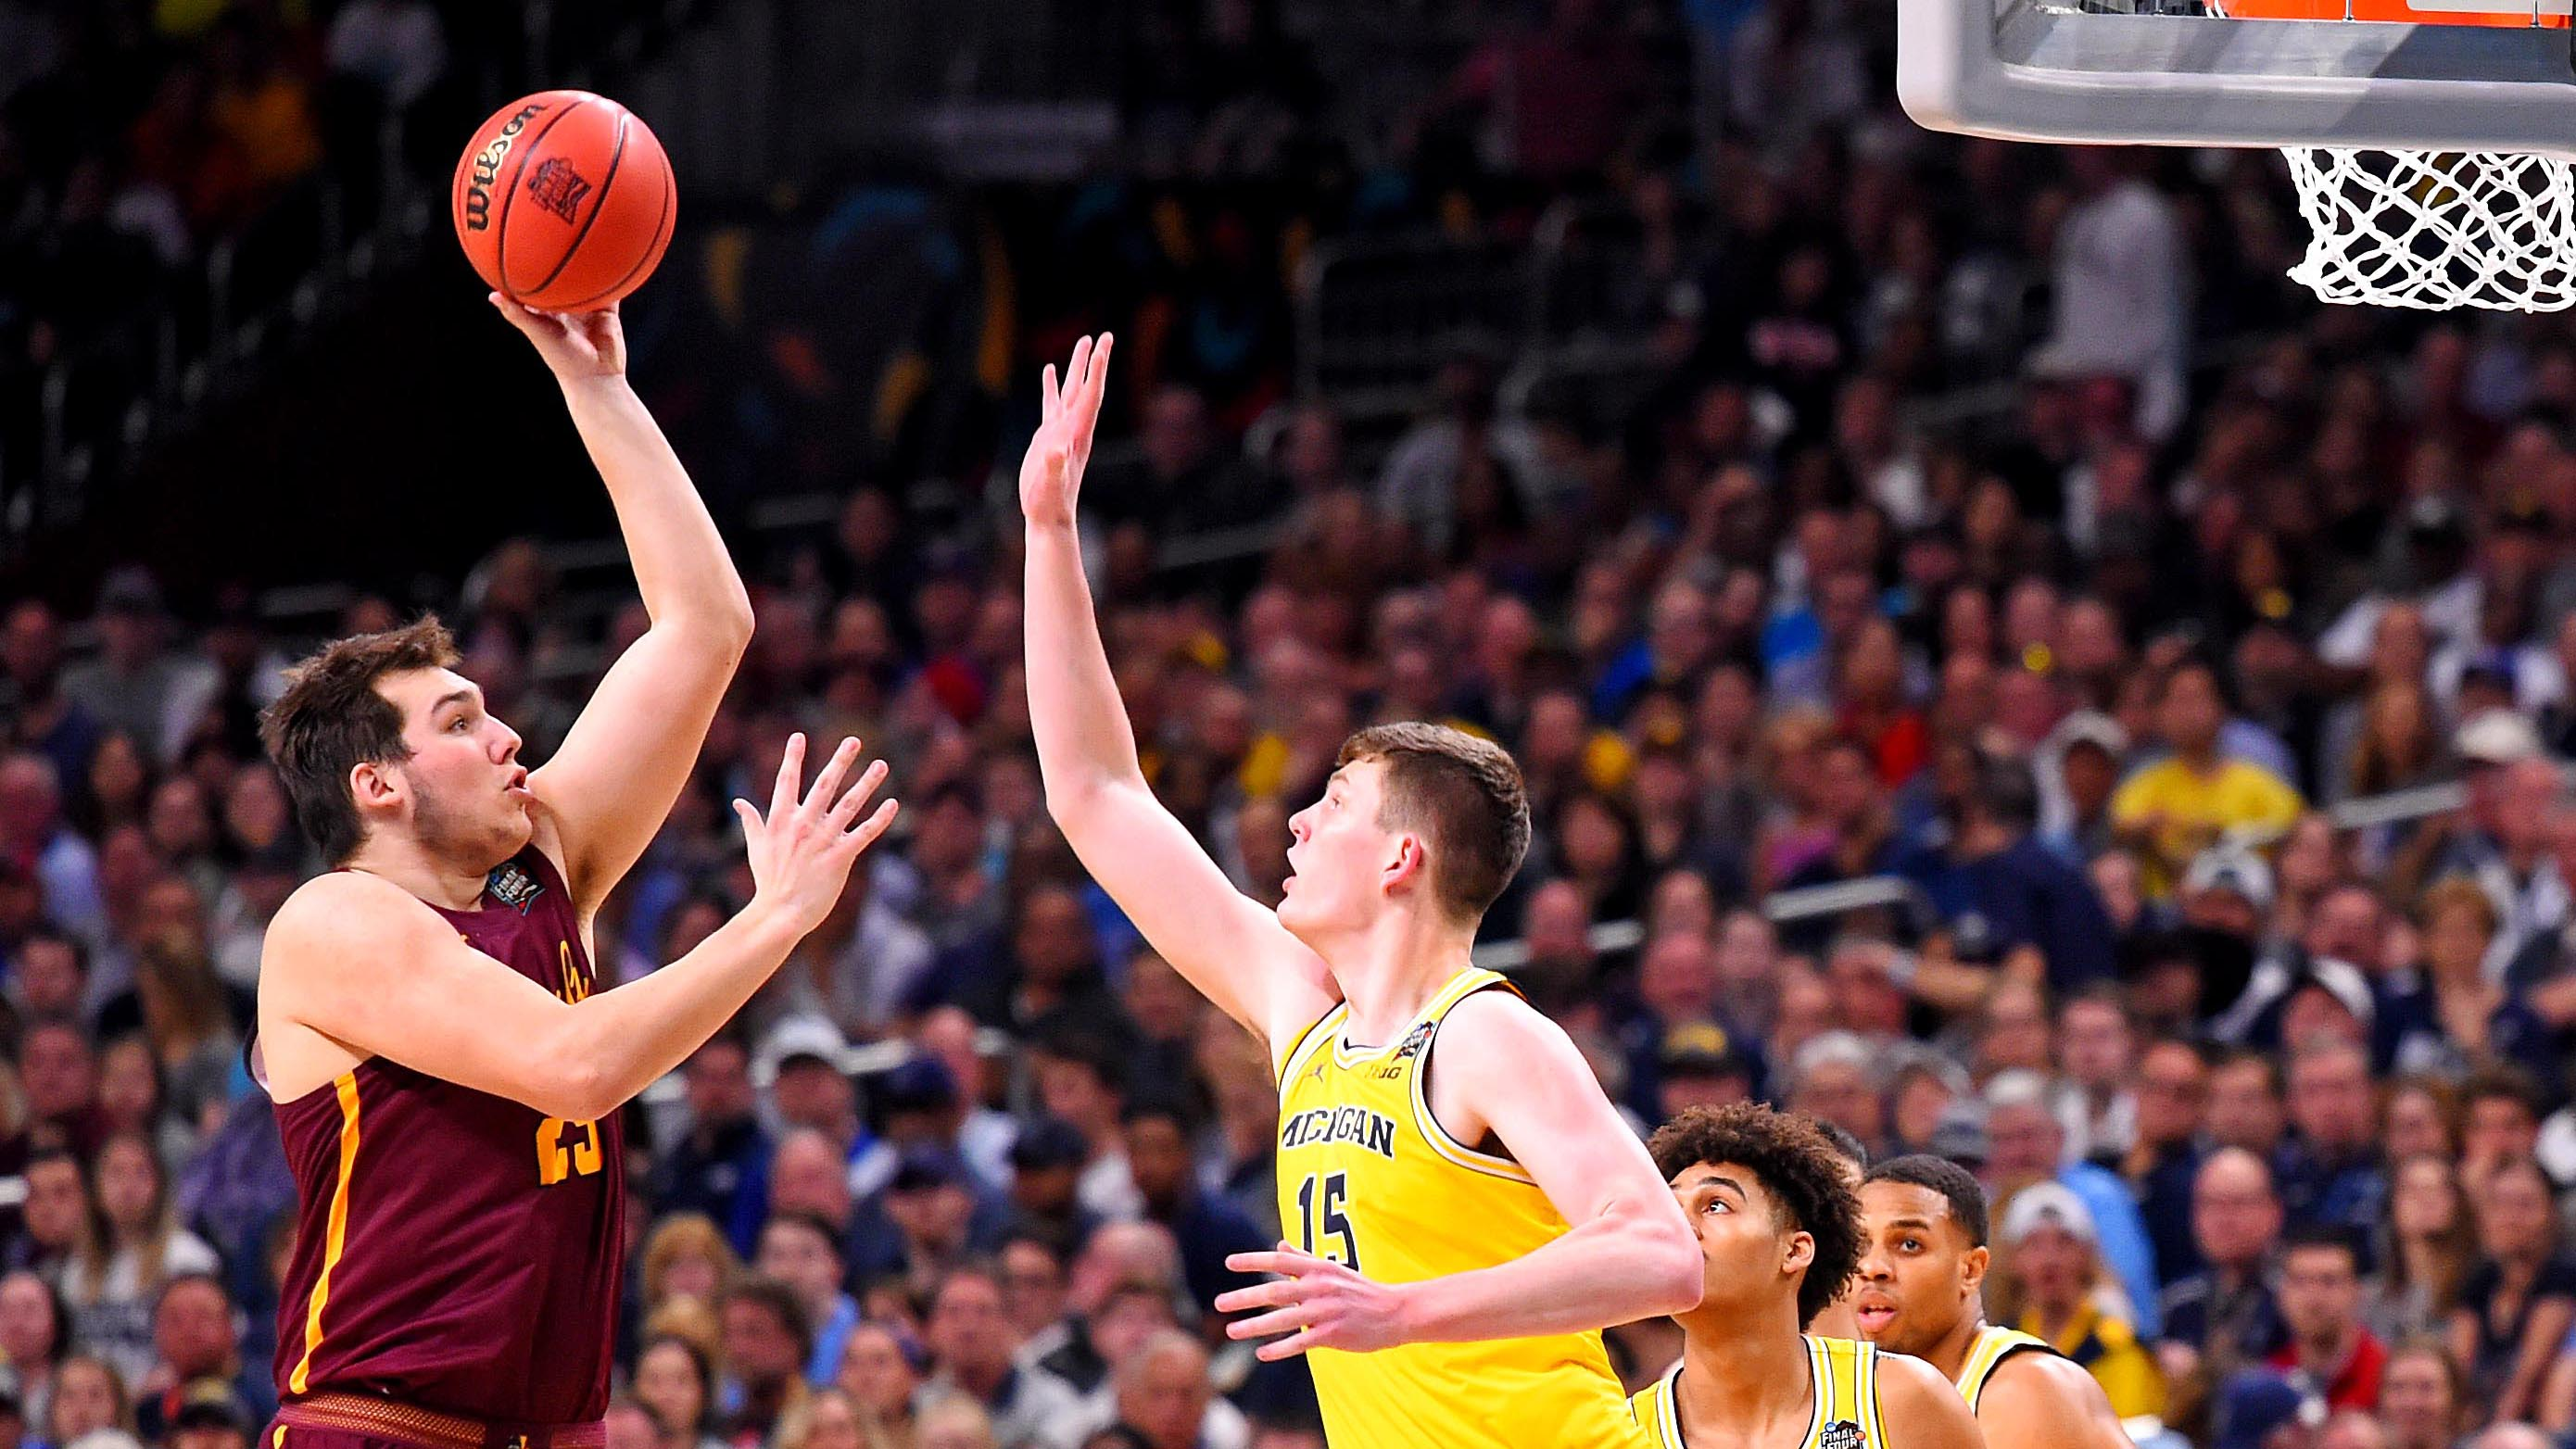 Loyola Chicago's Cameron Krutwig shoots over Michigan's Moritz Wagner